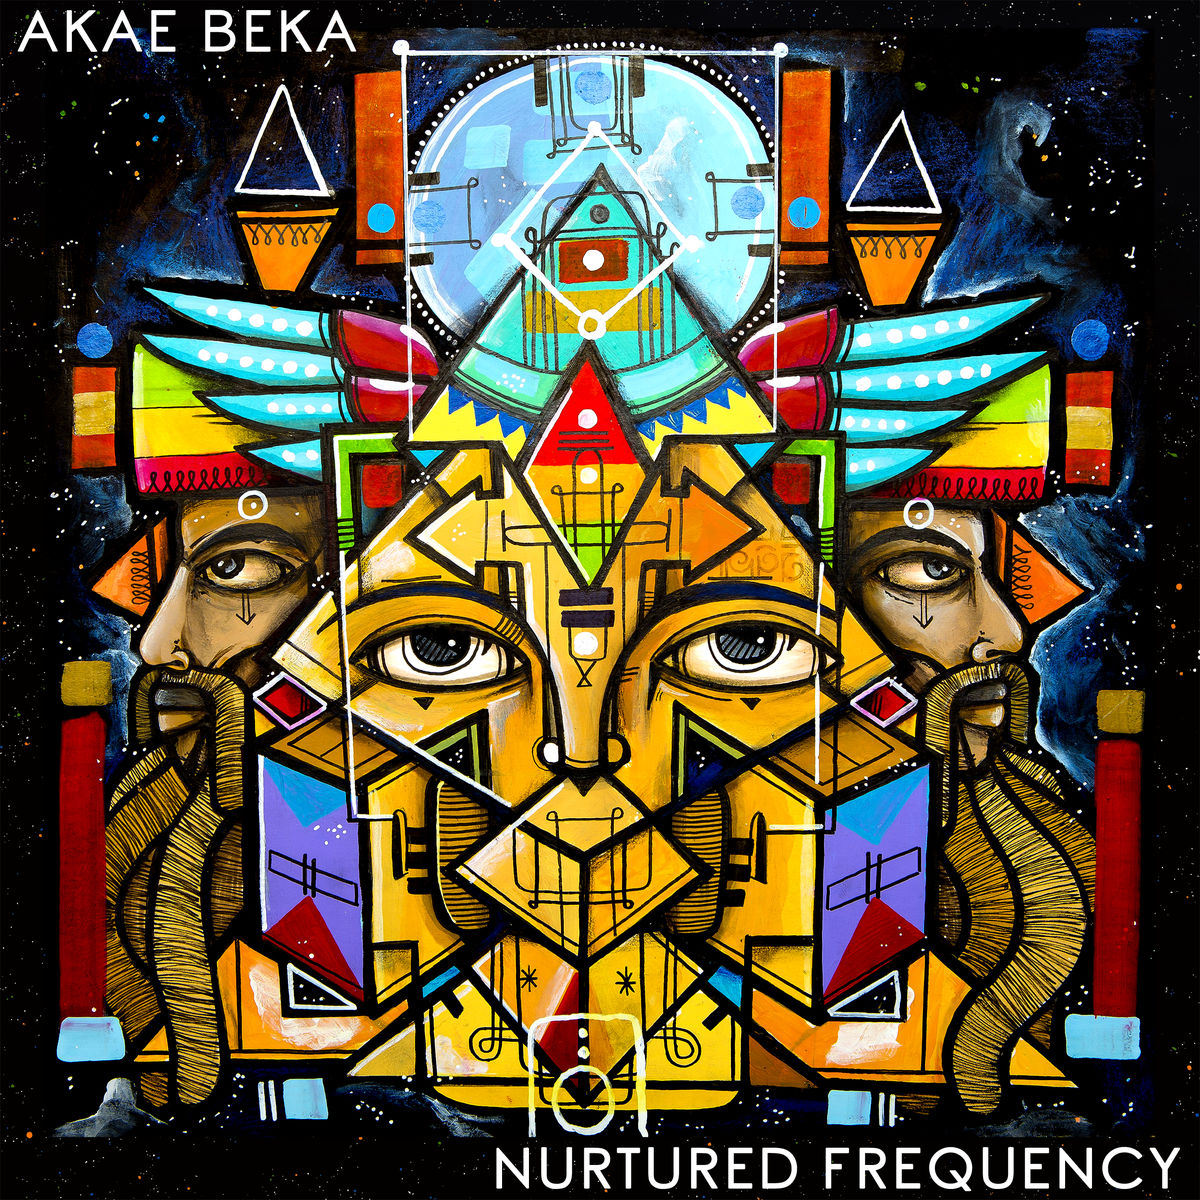 Akae Beka - Nurtured Frequency [Album] | 2018